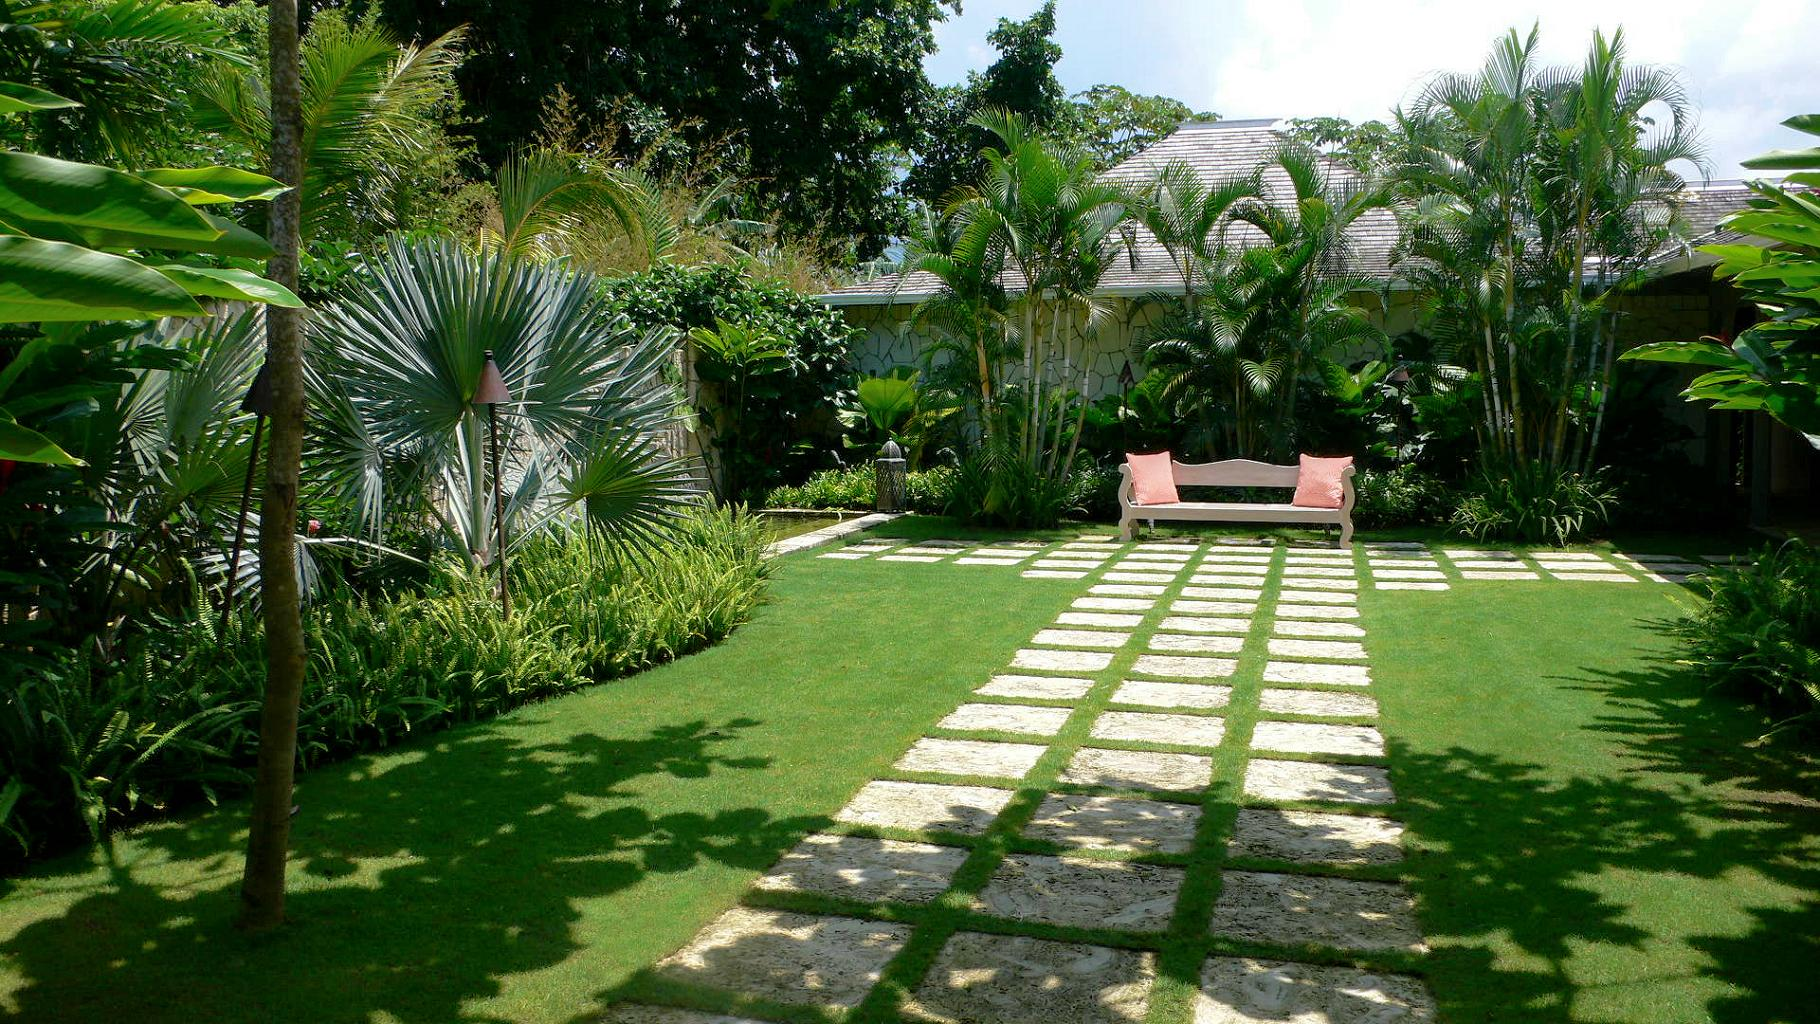 modern-landscape-design-ideas-for-backyard-garden-of-a-house-with-stone-floored-footpath-bench-trees-and-tropical-plants